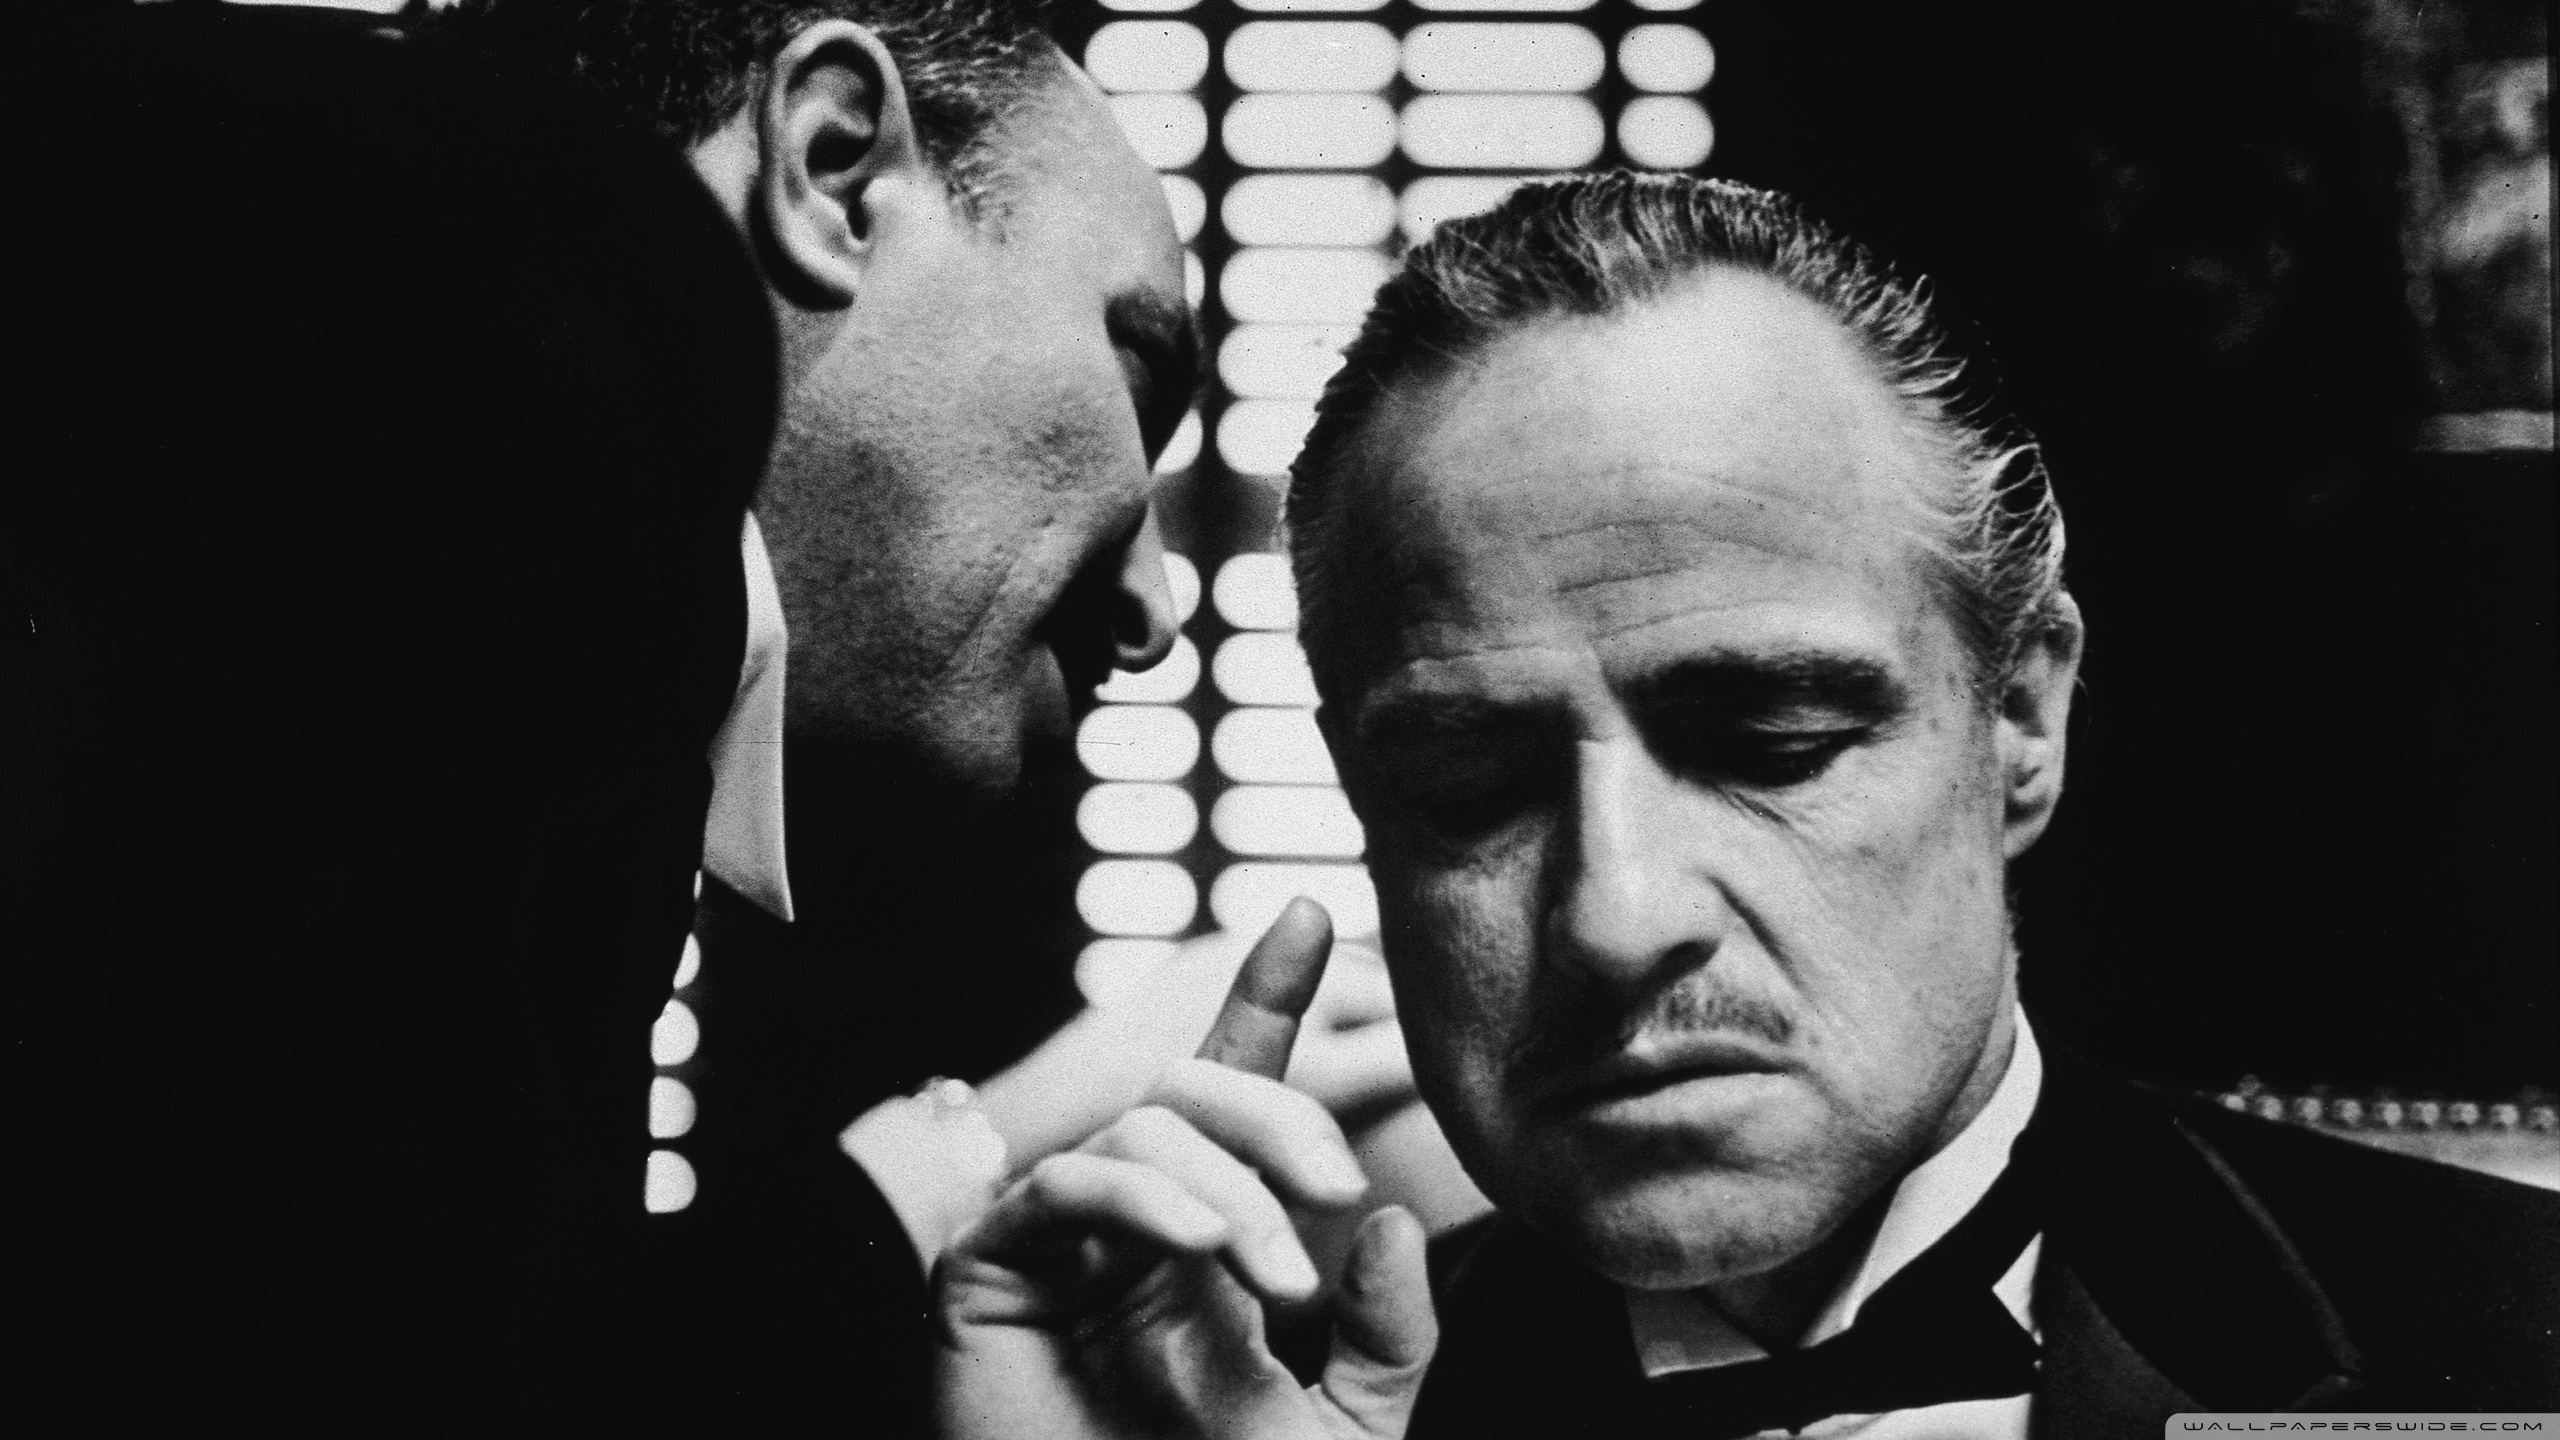 The Godfather (Labeled for reuse)